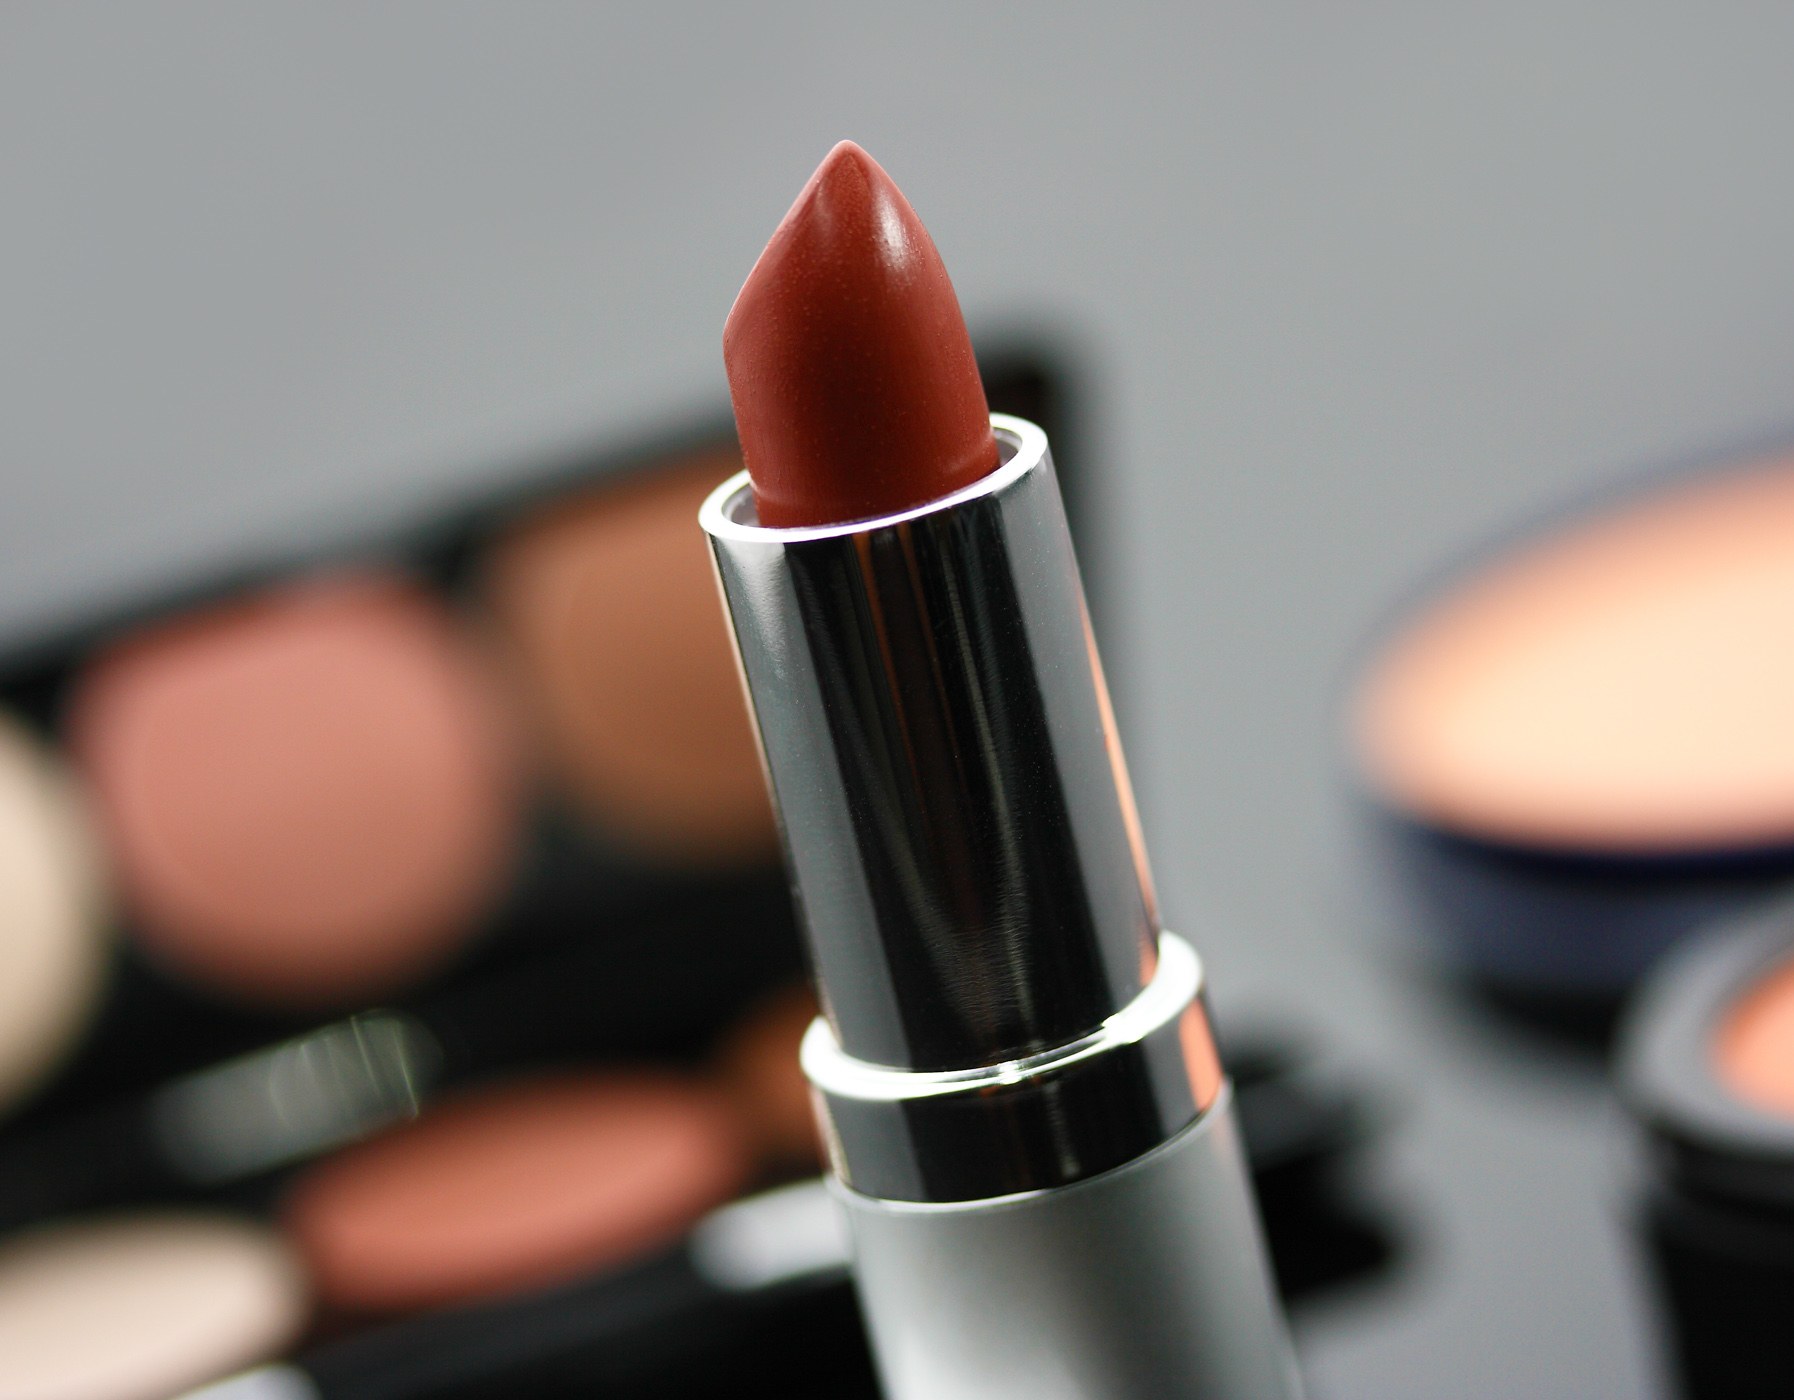 Red Lipstick And Other Cosmetics, Accessories, Lip, Stick, Skincare, HQ Photo